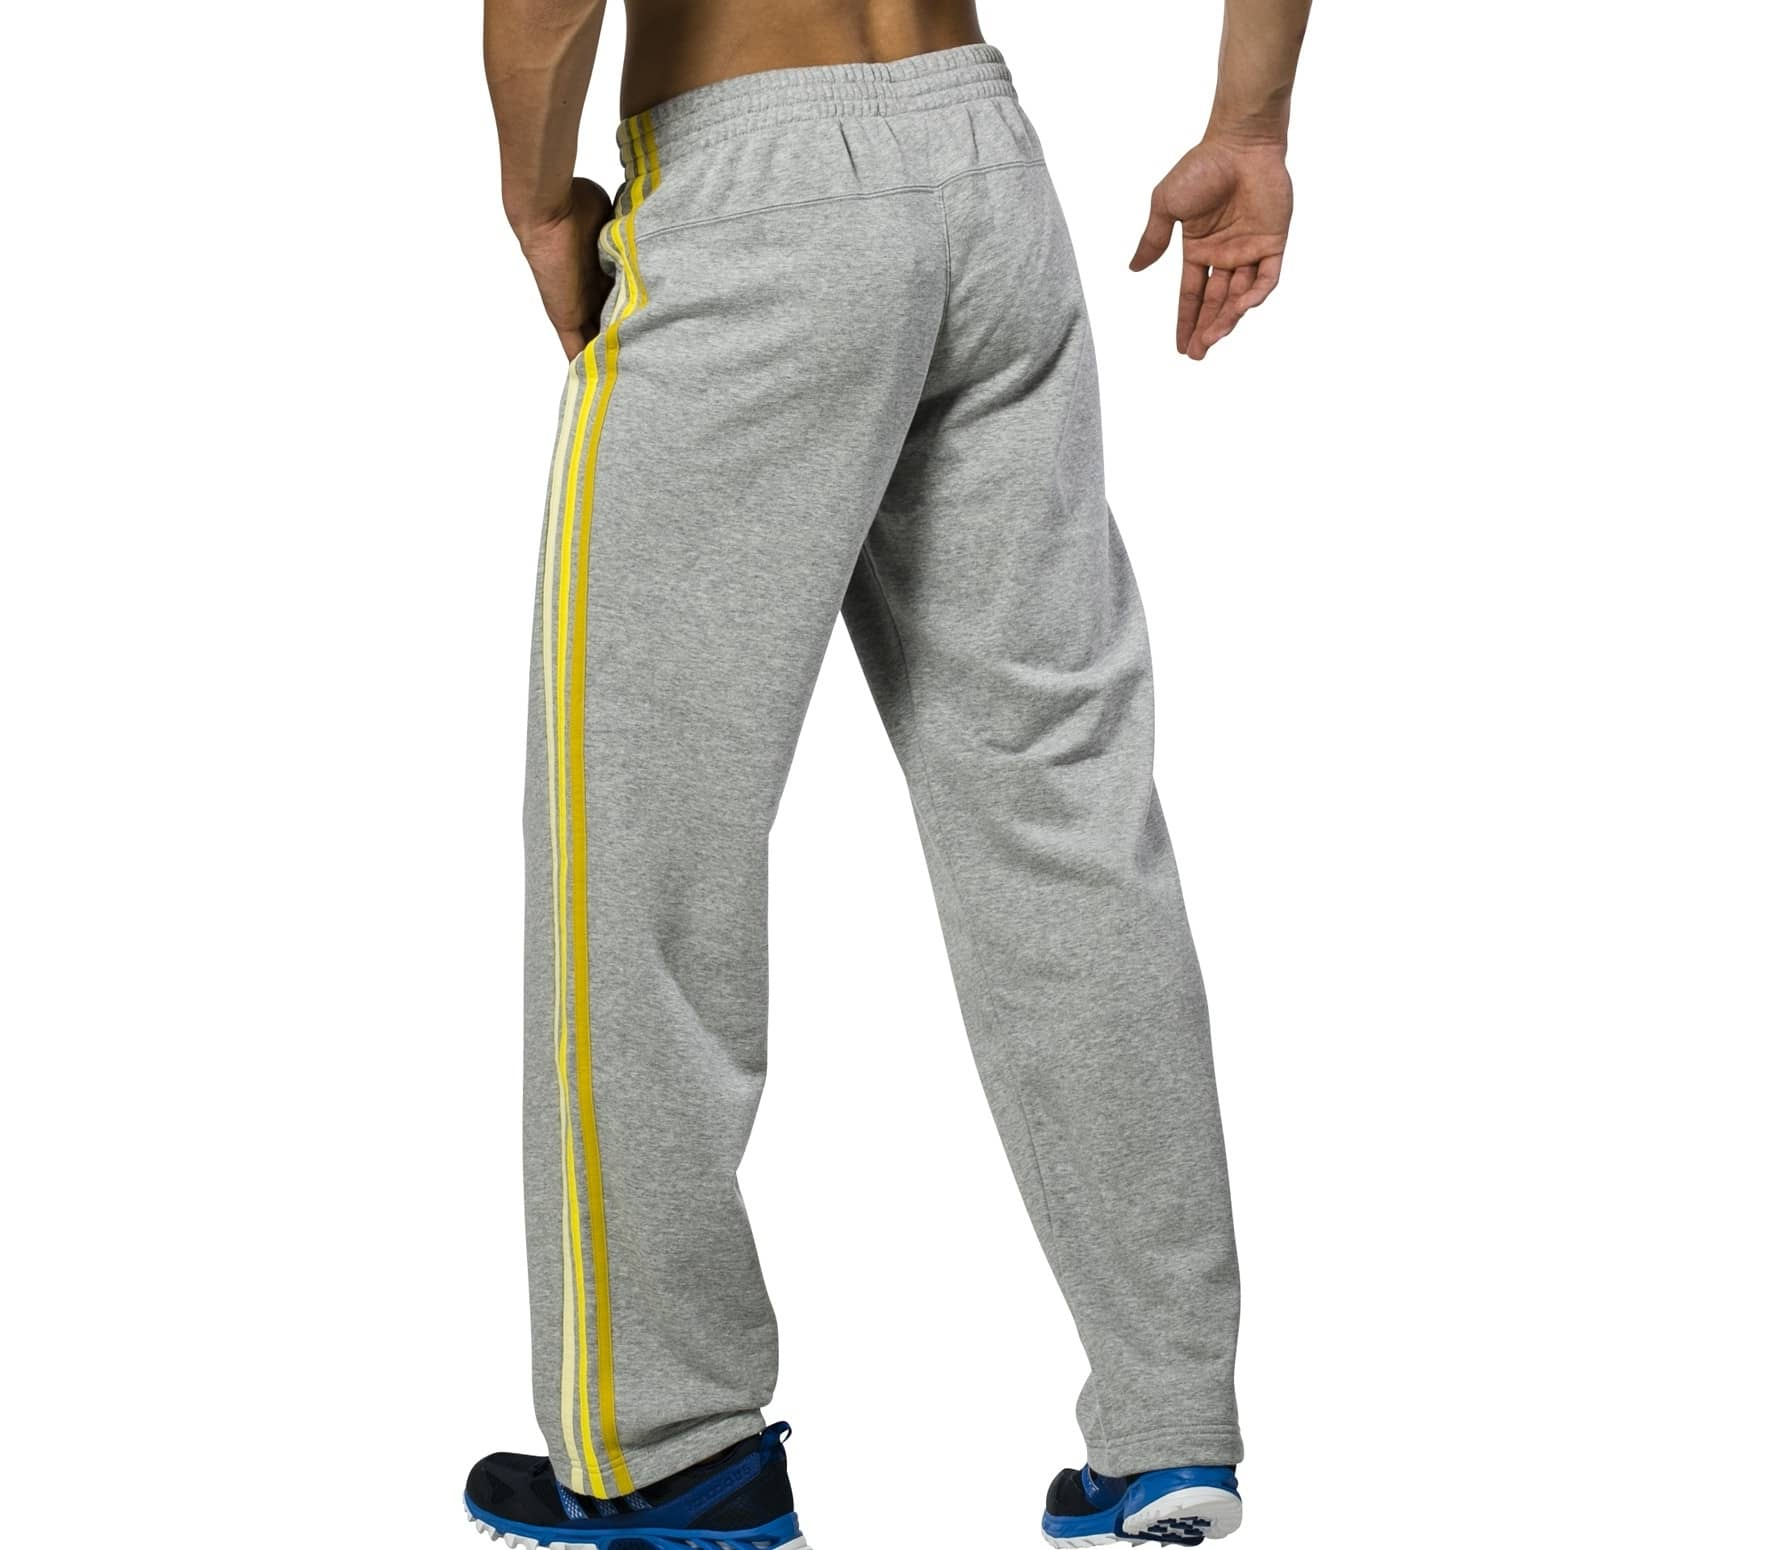 latest uk availability cheap prices Adidas - Fitness- and Training pants women's Essentials 3 Stripes - SS13